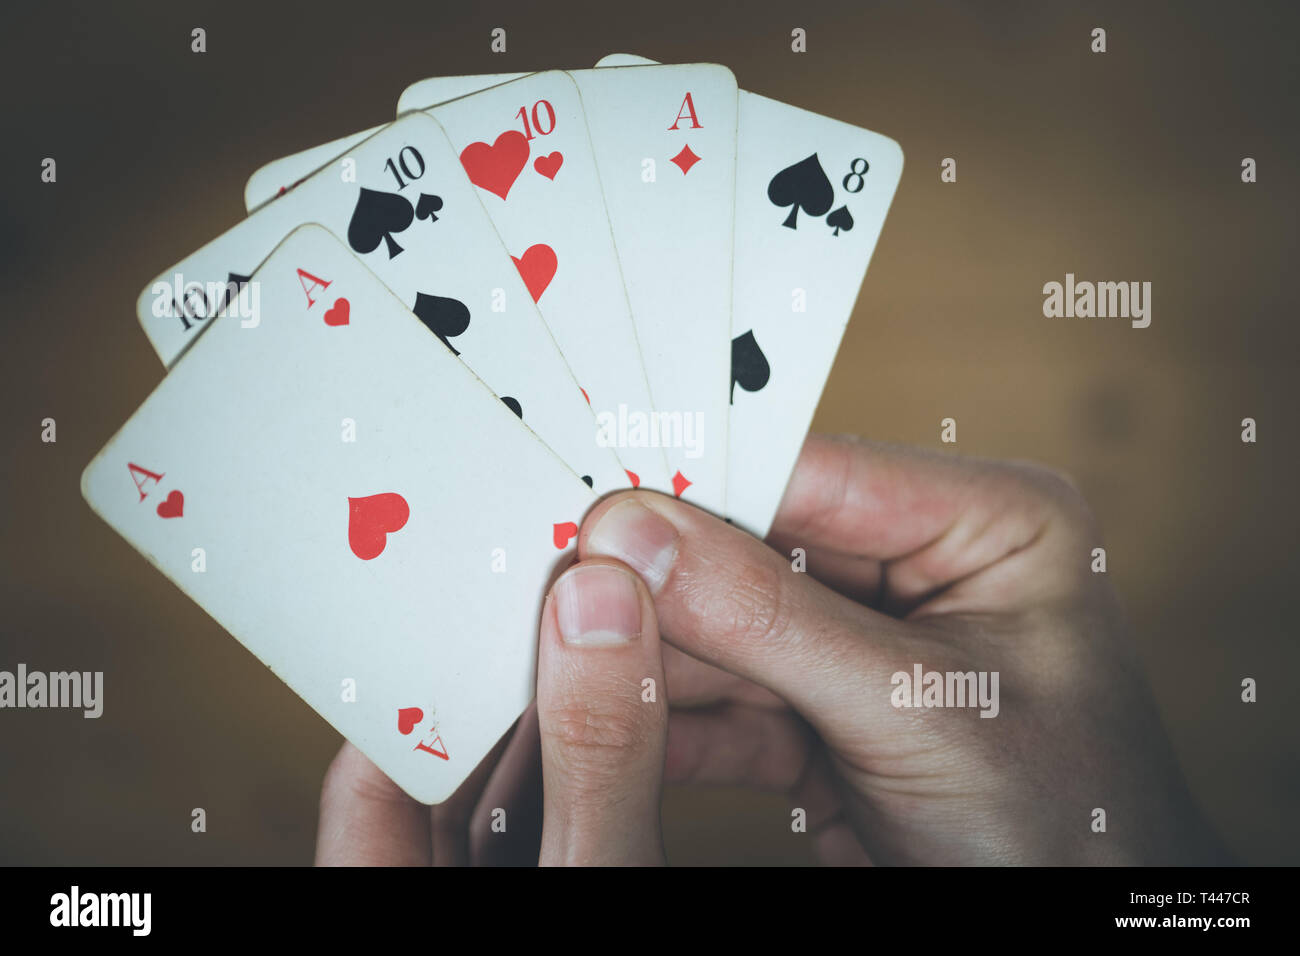 Man is playing cards, cutout of his hands - Stock Image